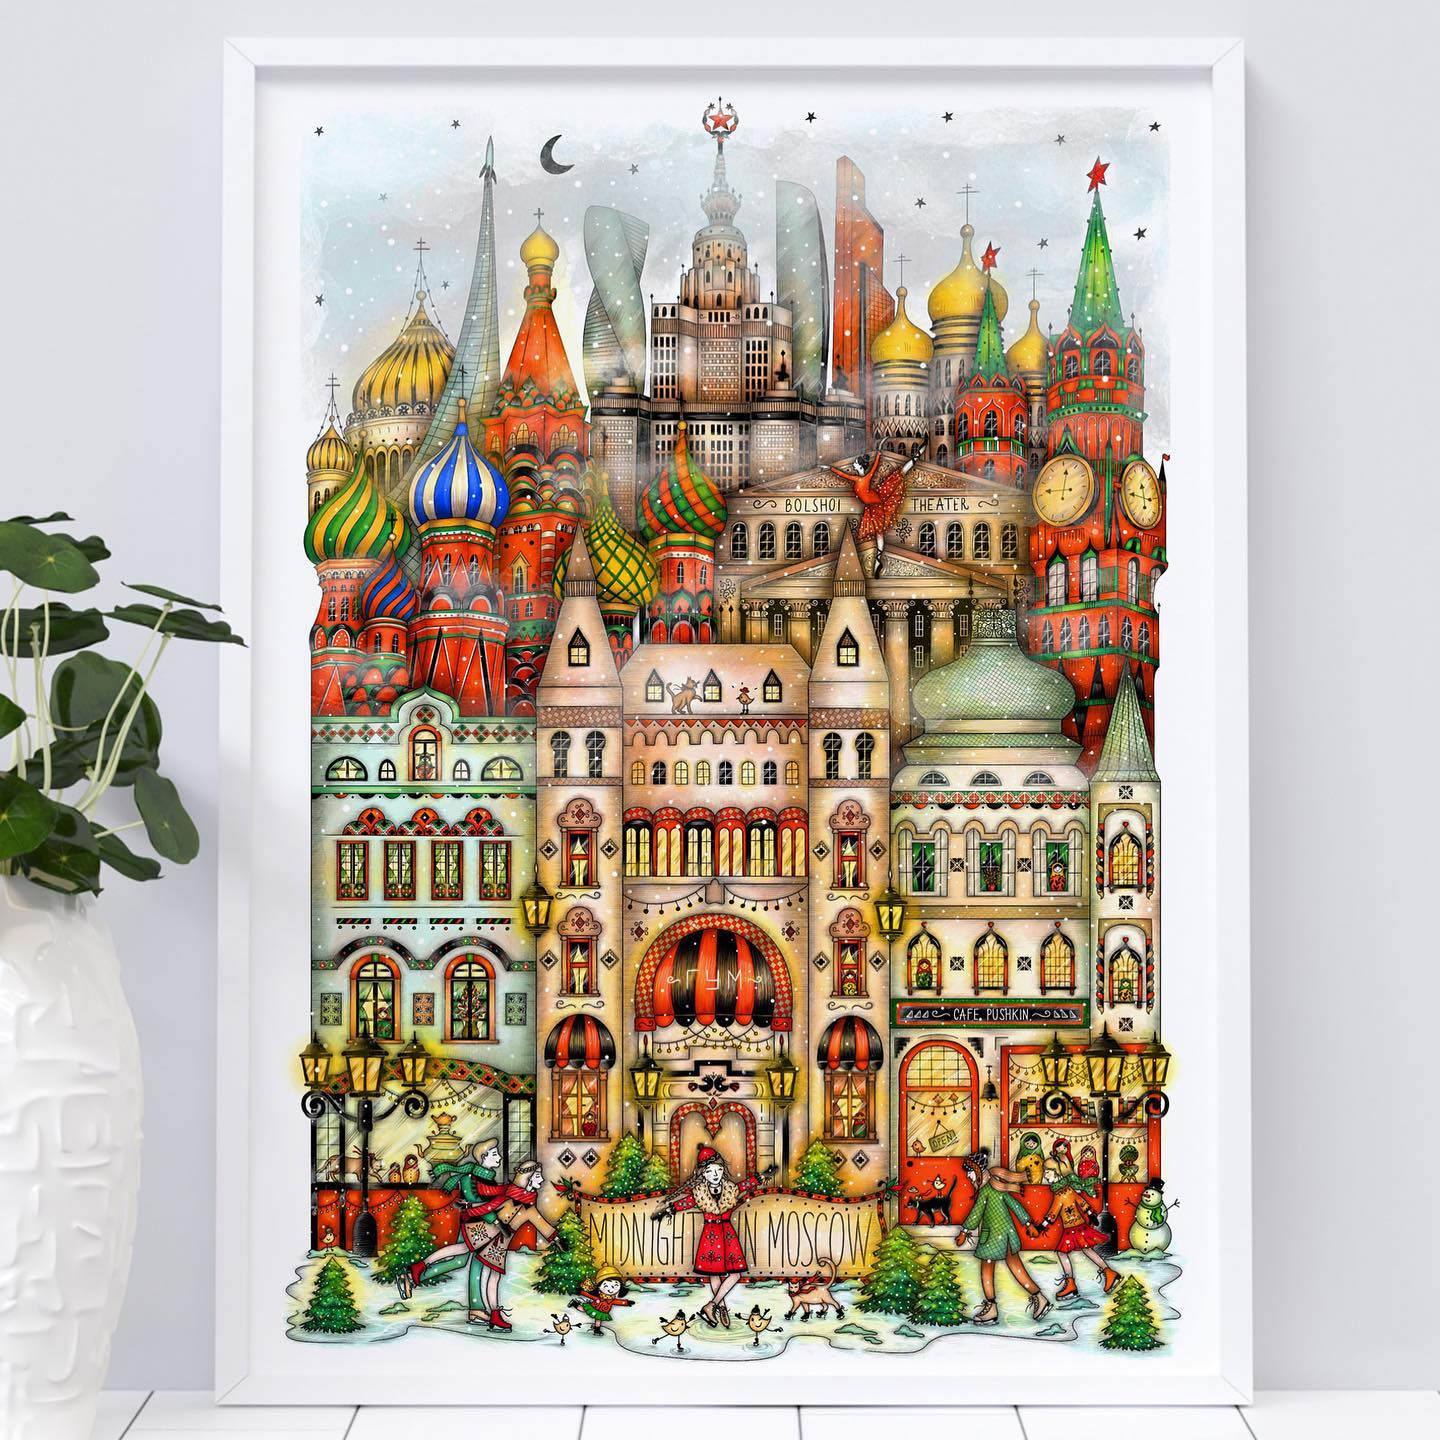 "Instagram post: ✨Two more days to place orders in the shop ✨ before I make a little break. ♥️   Happy Thursday everyone! ☀️ How are you all doing these days? Just wanted to say I am happy you liked my Moscow illustration and I am very grateful for your orders! 🧡💚❤️  I also have some exciting news. 🥳 I've started working on my next city illustration and this will be ""Midnight in San Francisco"". 🇺🇸 🌆 It is a challenge and I am so looking forward to showing this to you. I loved the colorful Victorian houses and the cable cars. ✨💗 Stay tuned, take care and thank you so much for your support on my art! 🤗 • • • #madalinadraws #madalinatantareanu #midnightinmoscow #moscowdrawing #moscowpostcard #watercolormoscow #russia #fromrussiawithlove #illustration #drawing #art #artist #artwork #etsy #etsyartshop #artistonetsy #artistoninstagram #postermoscow #ipadpro #procreate #colorfulmoscow #etsyseller #idrawandtravel #kremlin #stbasilscathedral #pushkin #bolshoitheatre #lomonosov"